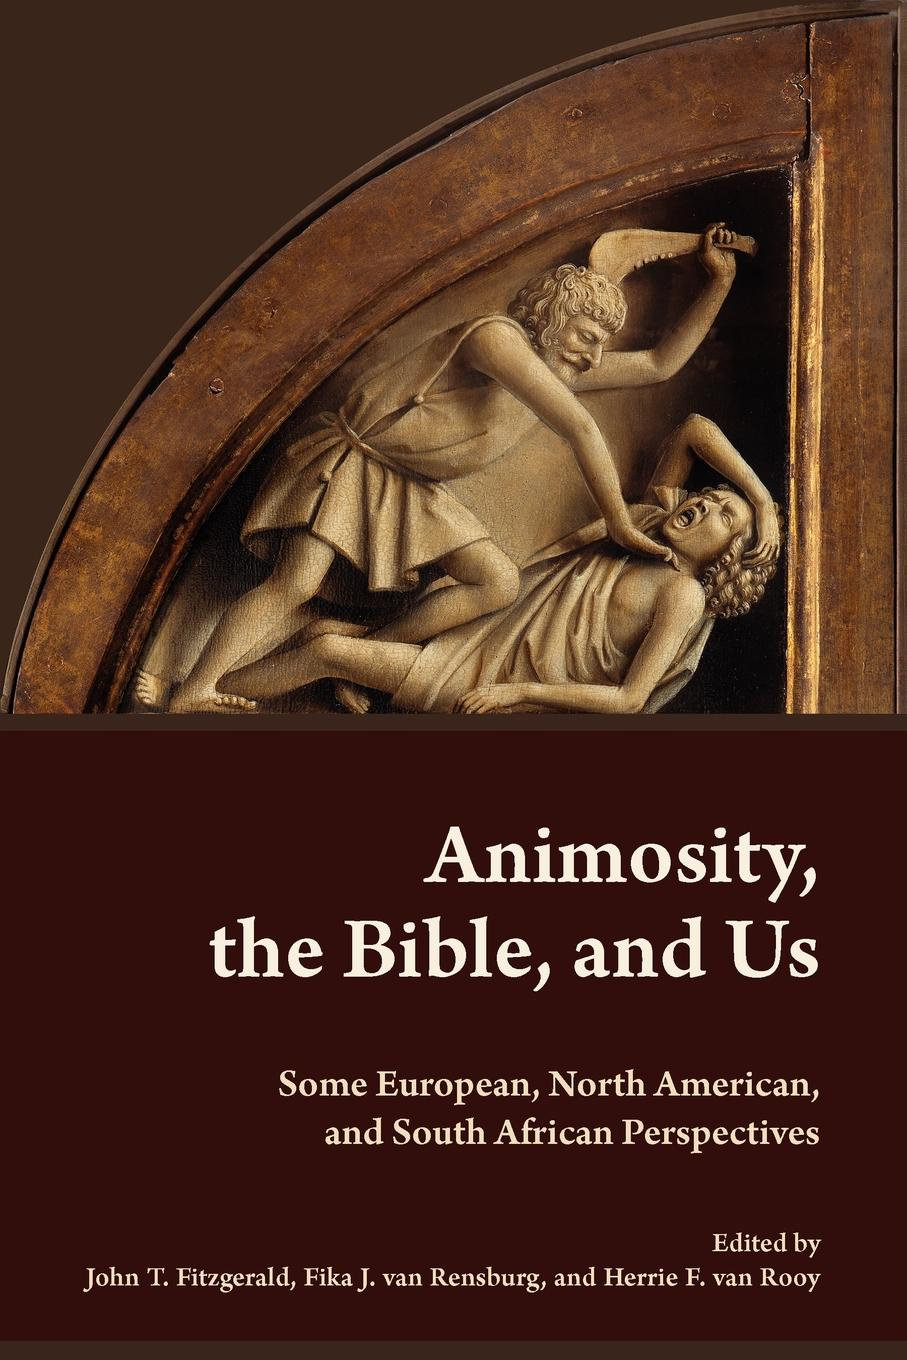 European Association of Biblical Studies Animosity, the Bible, and Us. Some European, North American, South African Perspectives